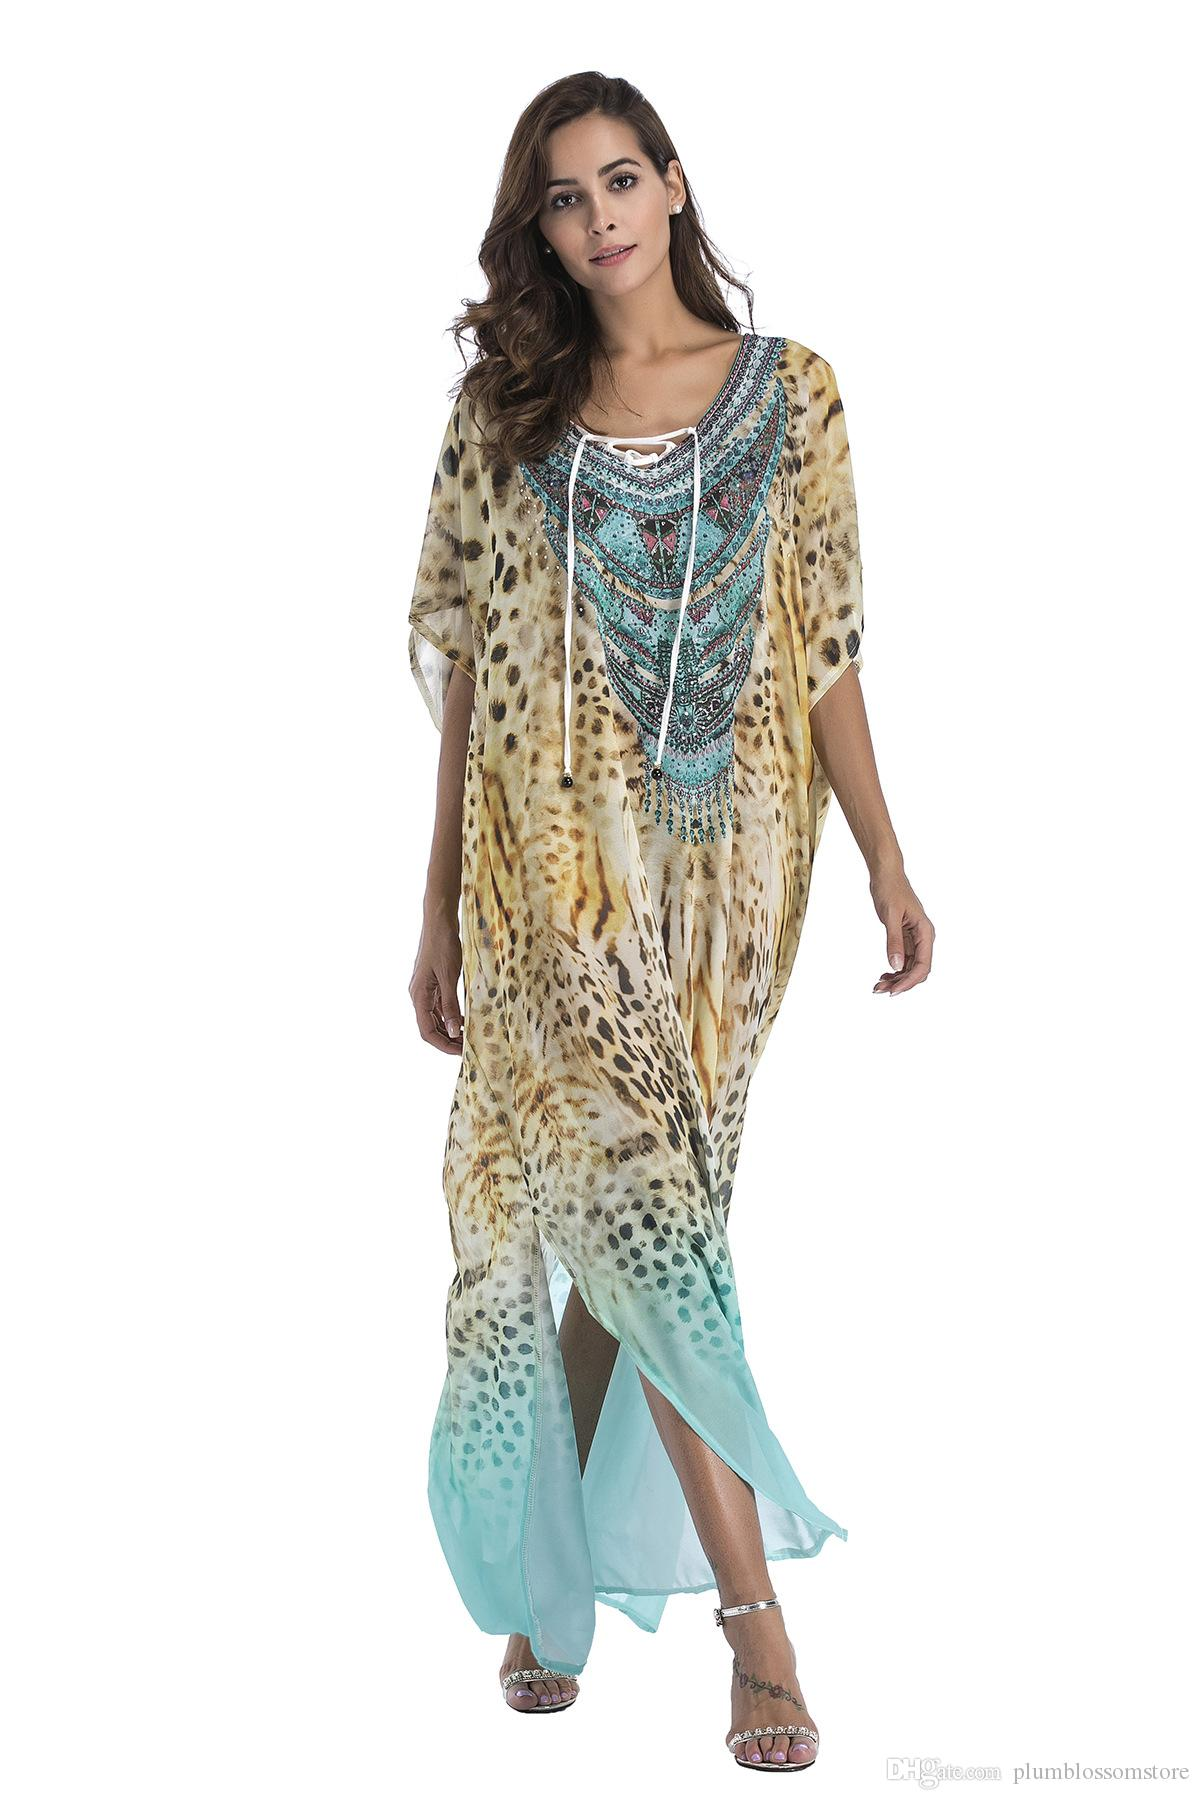 b33d40c2164 Plus Size Chiffon Fashion Print Bohemian Long Maxi Dress Women Boho Cover  Ups 2019 New Summer Casual Sundress Beach Sarongs Large Size Robes Dress  Sale Sexy ...